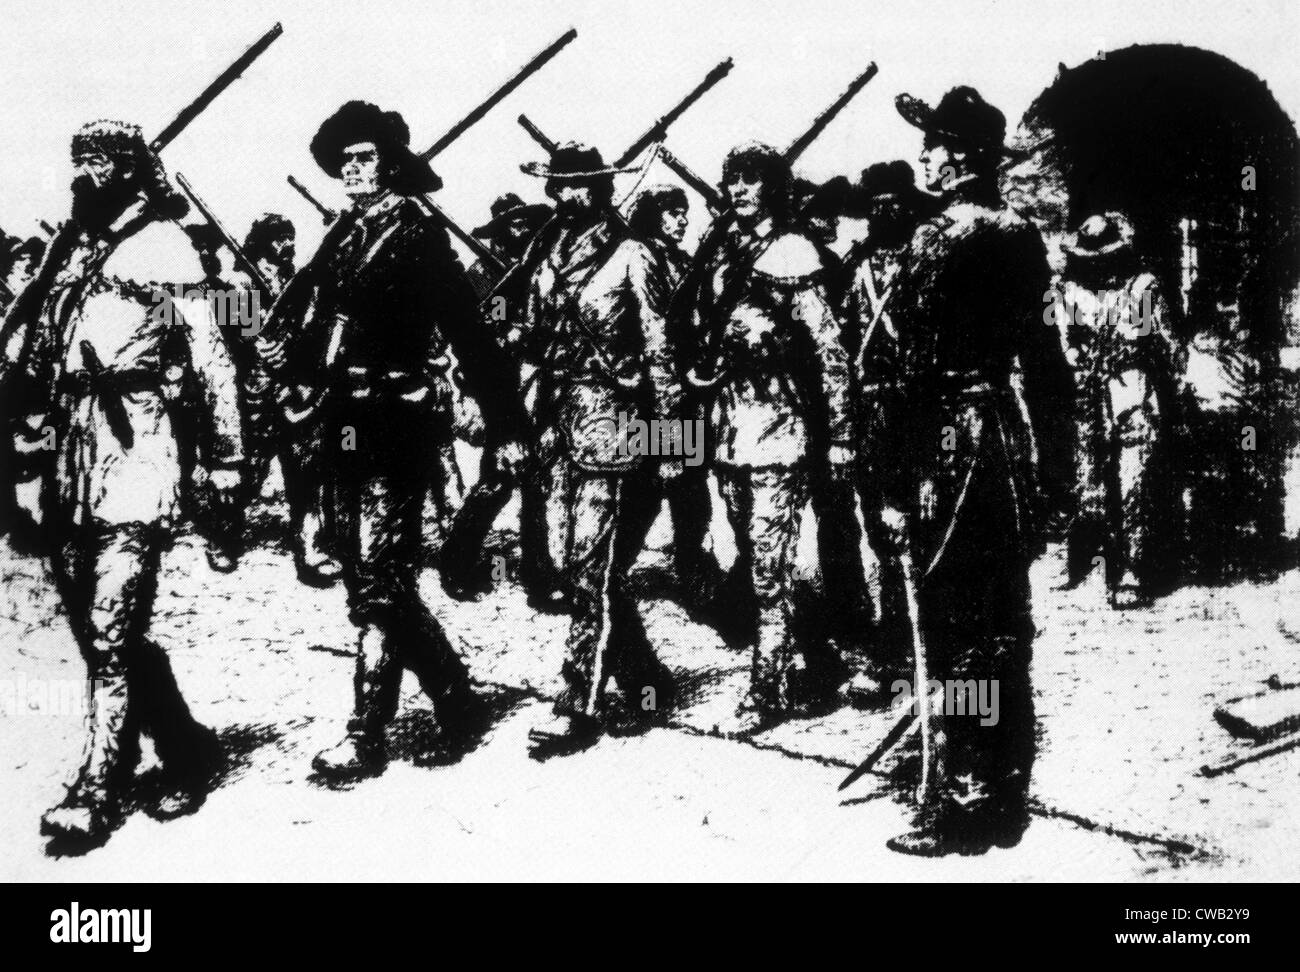 Colonel William Travis standing on the line he drew at the Alamo, March 3, 1836 - Stock Image